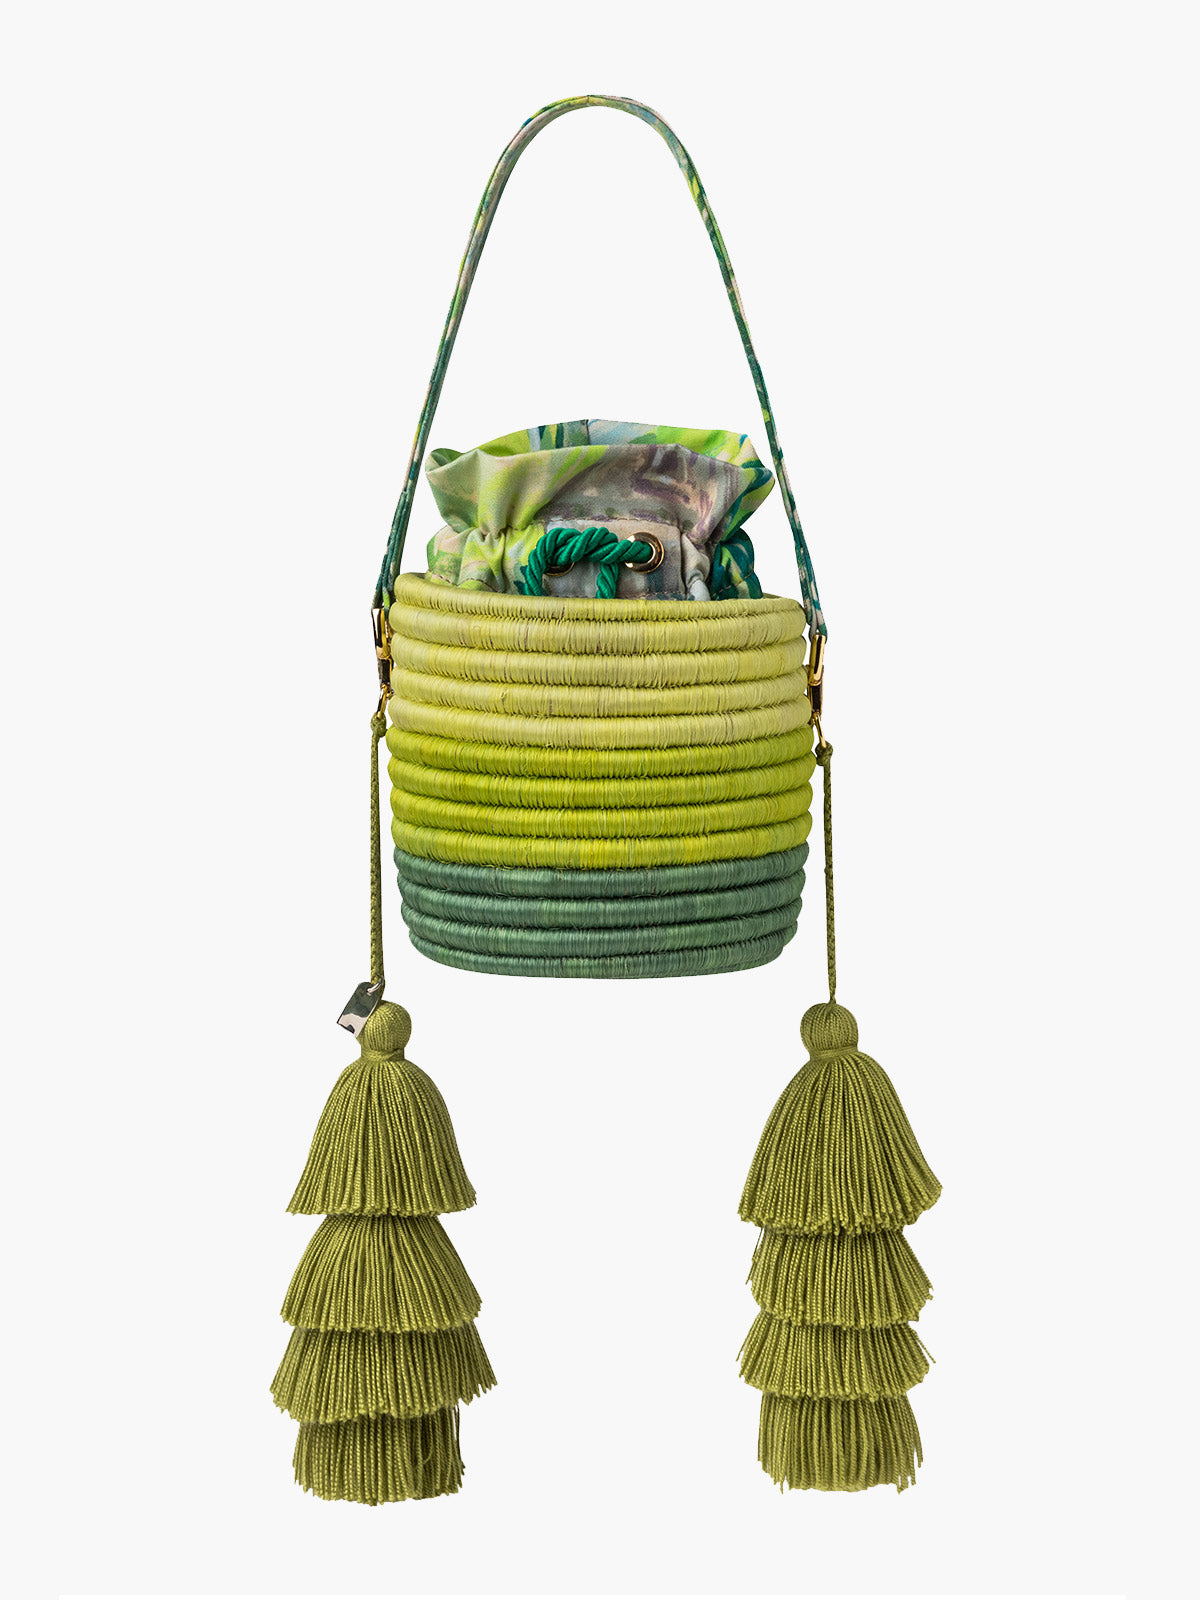 Bucket Bag | Jardin Degrade Bucket Bag | Jardin Degrade